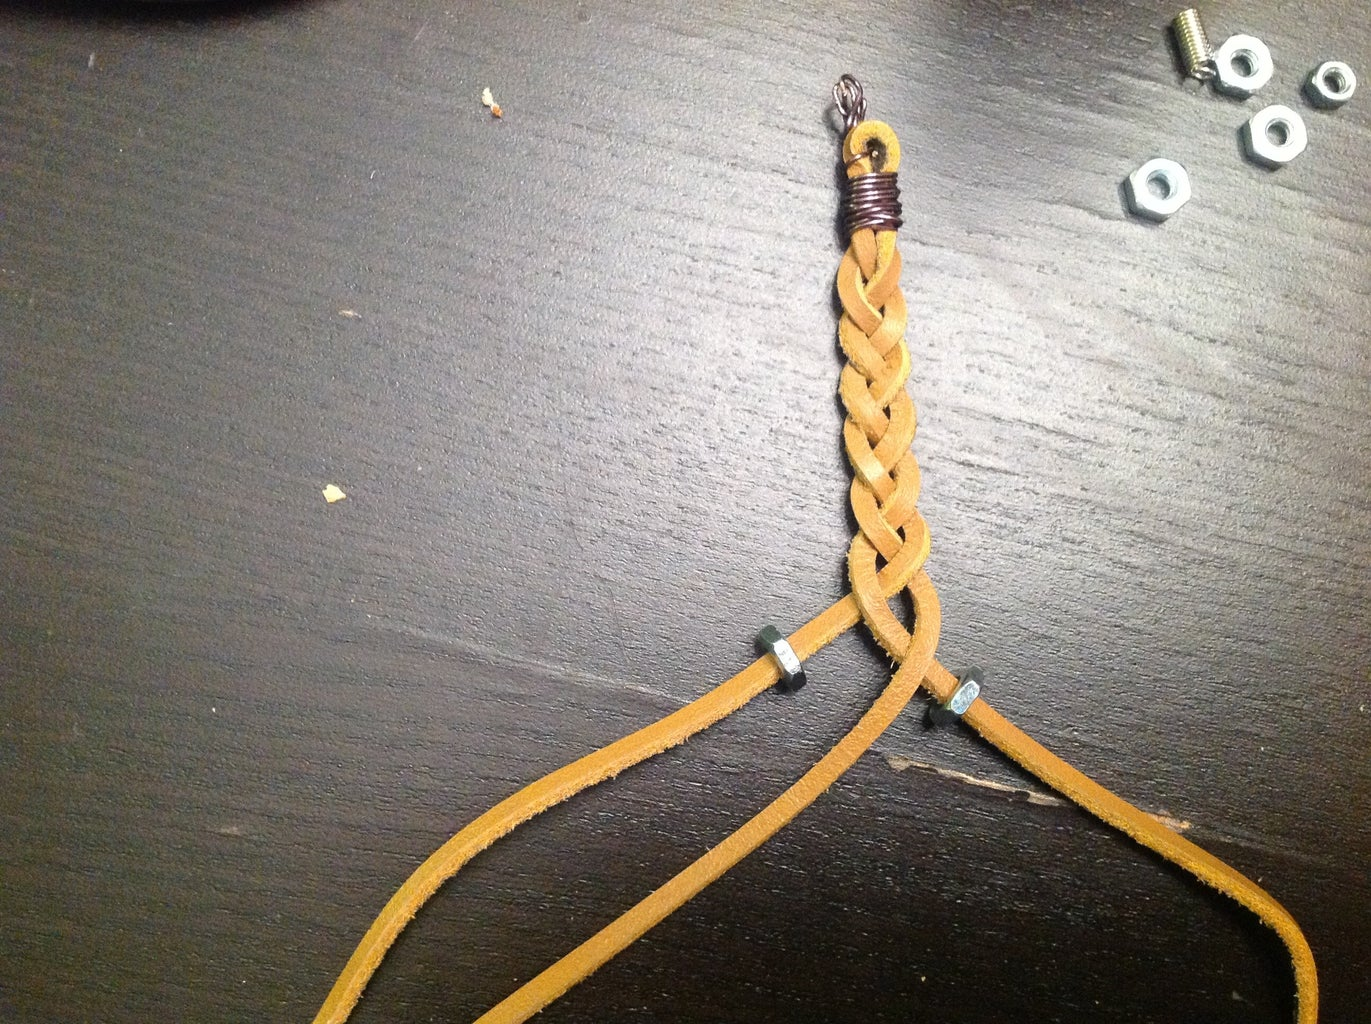 Add Hex Nuts to the Braid